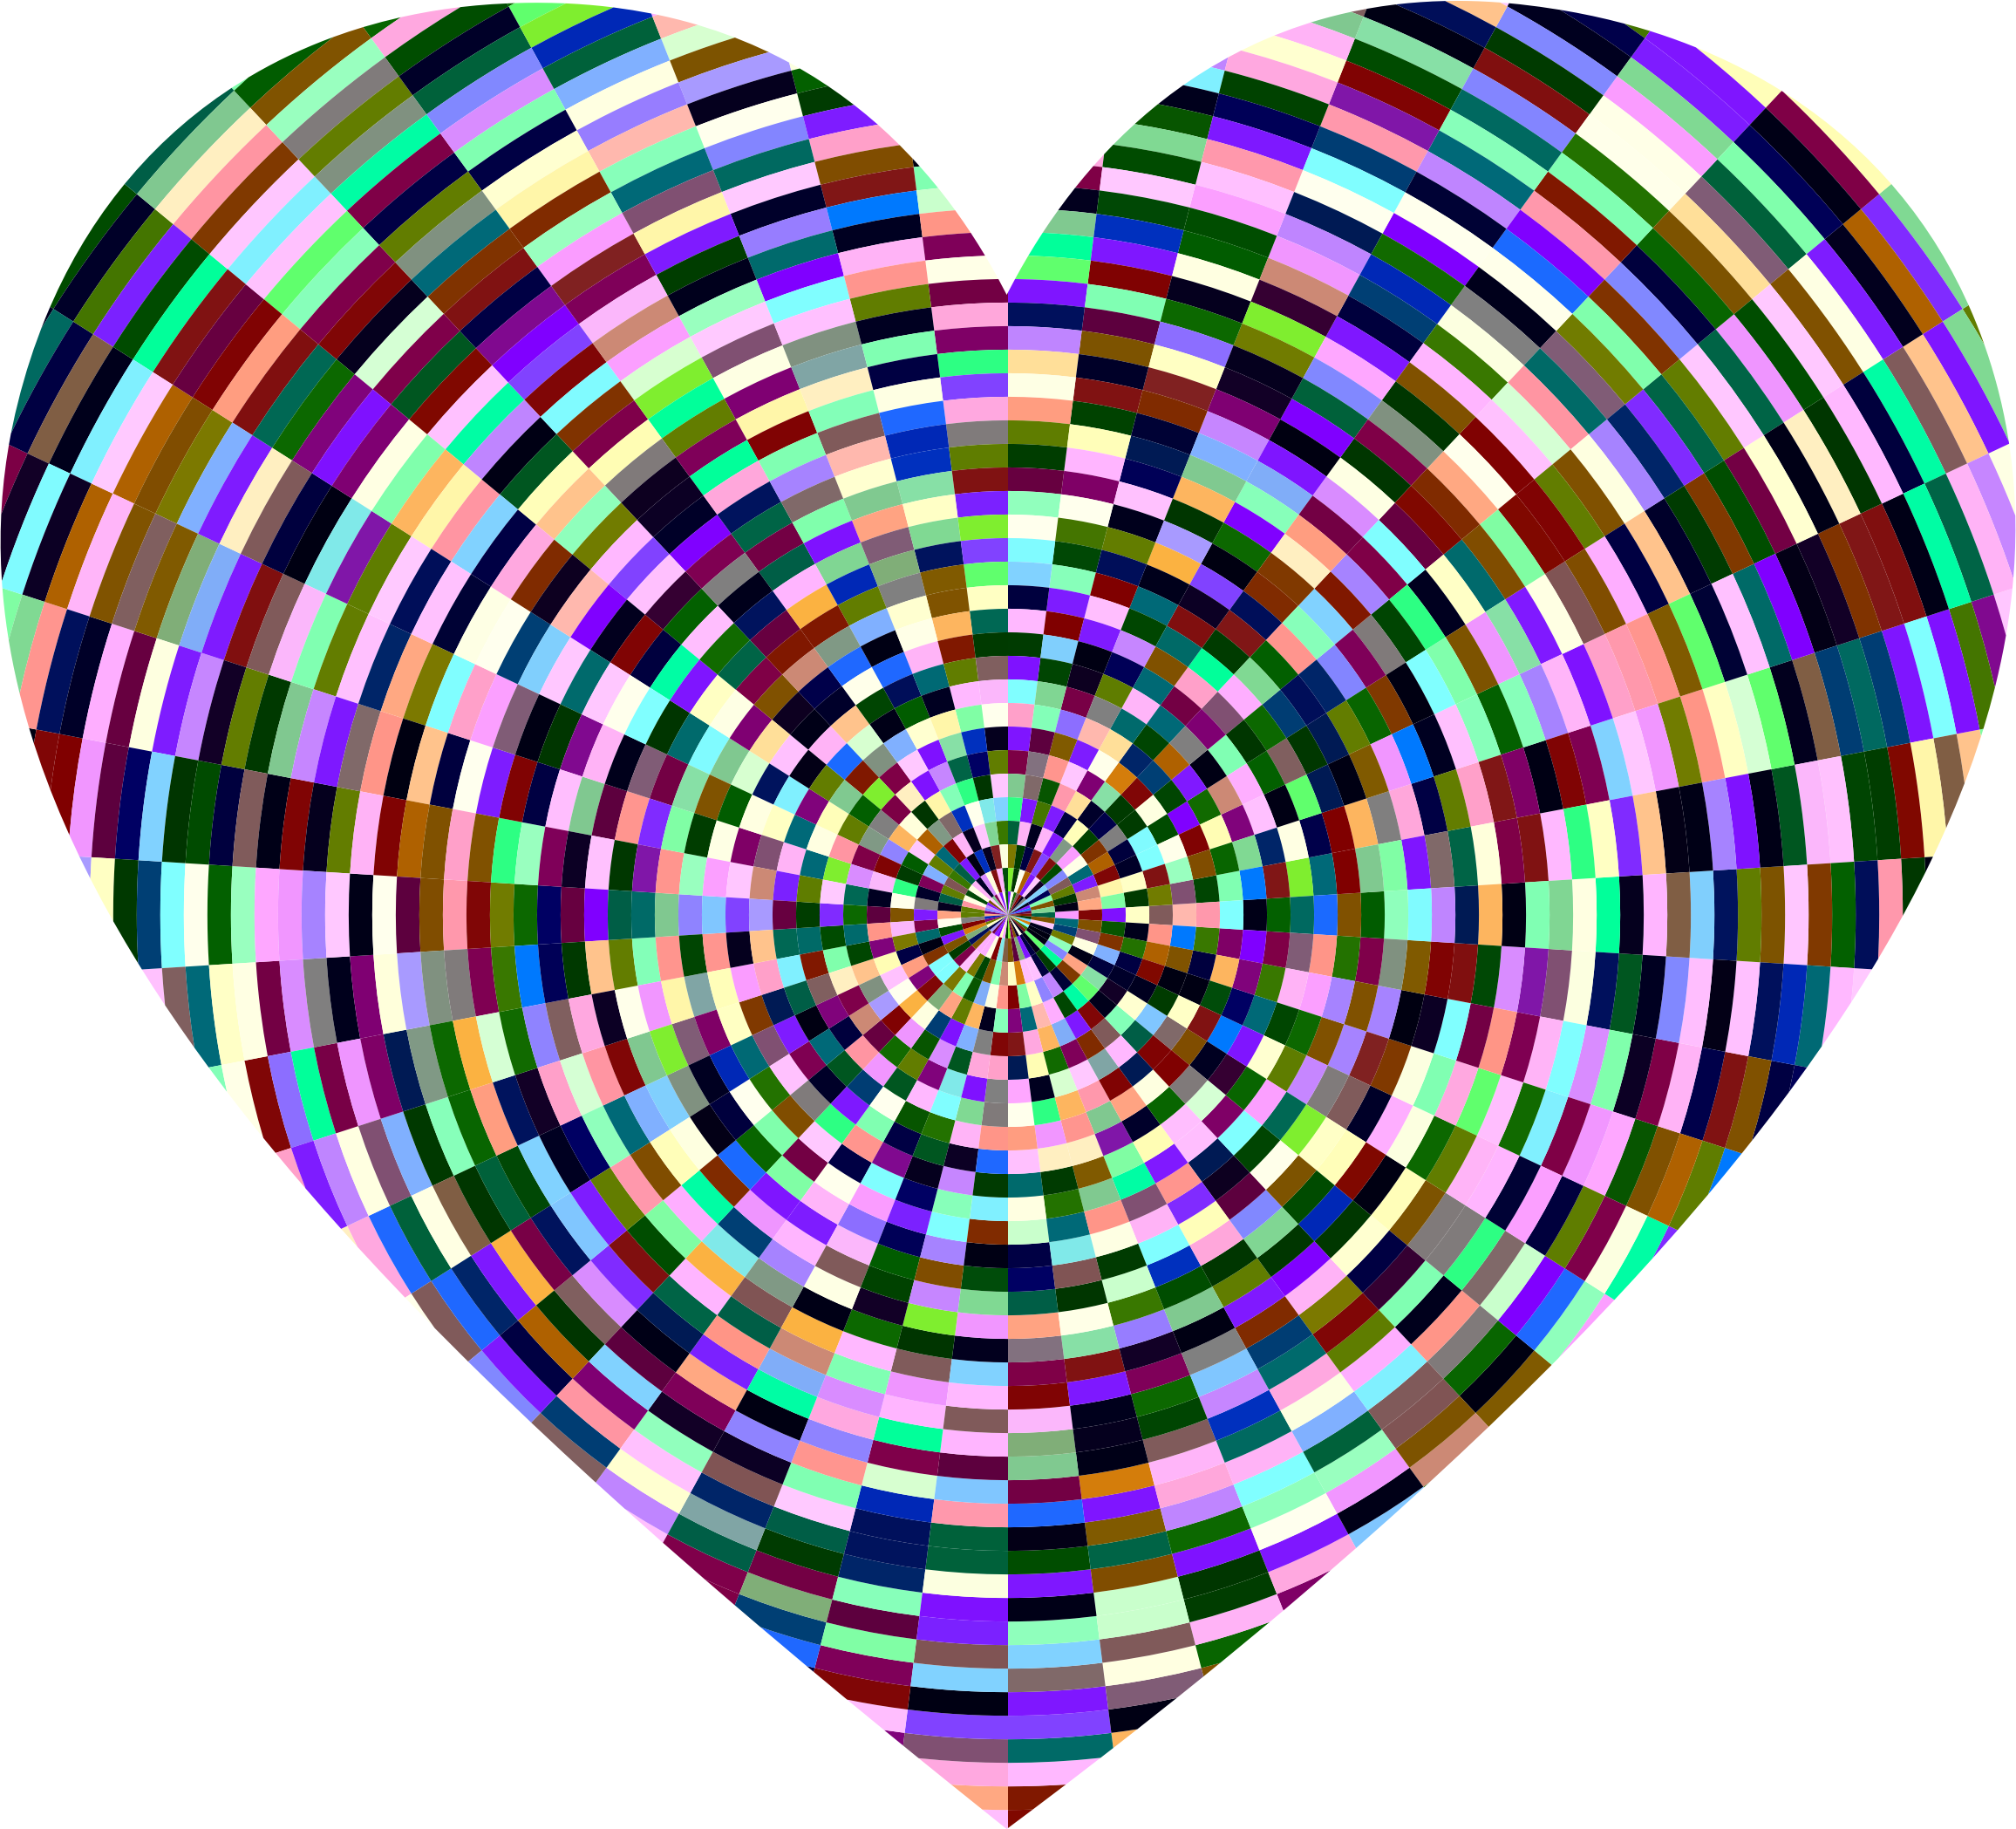 Vortex Heart by GDJ